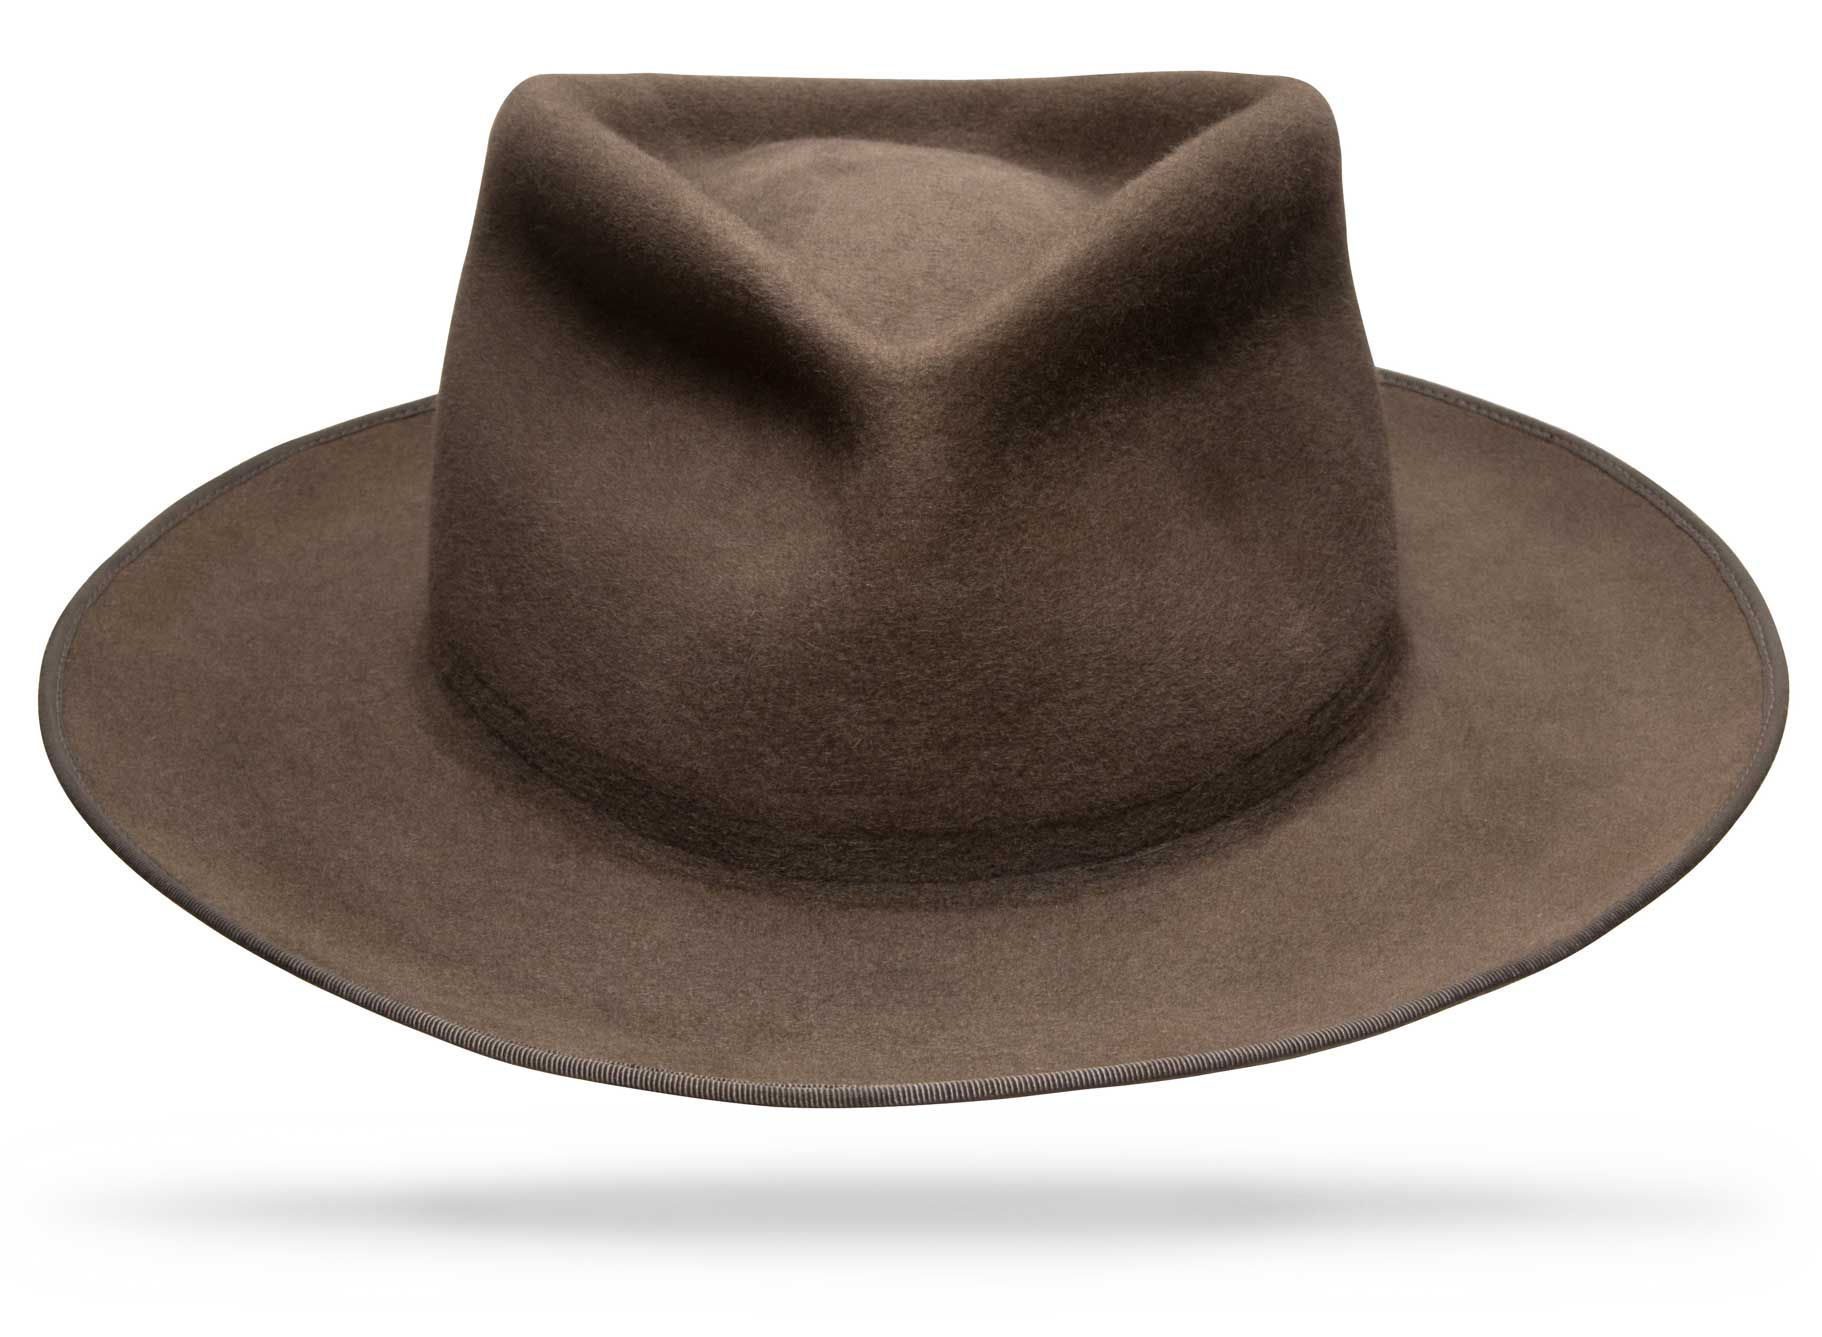 3567ec34cf556 HOPPER - We are delighted to release the iconic Chief Hopper s Hat created  for David Harbour s